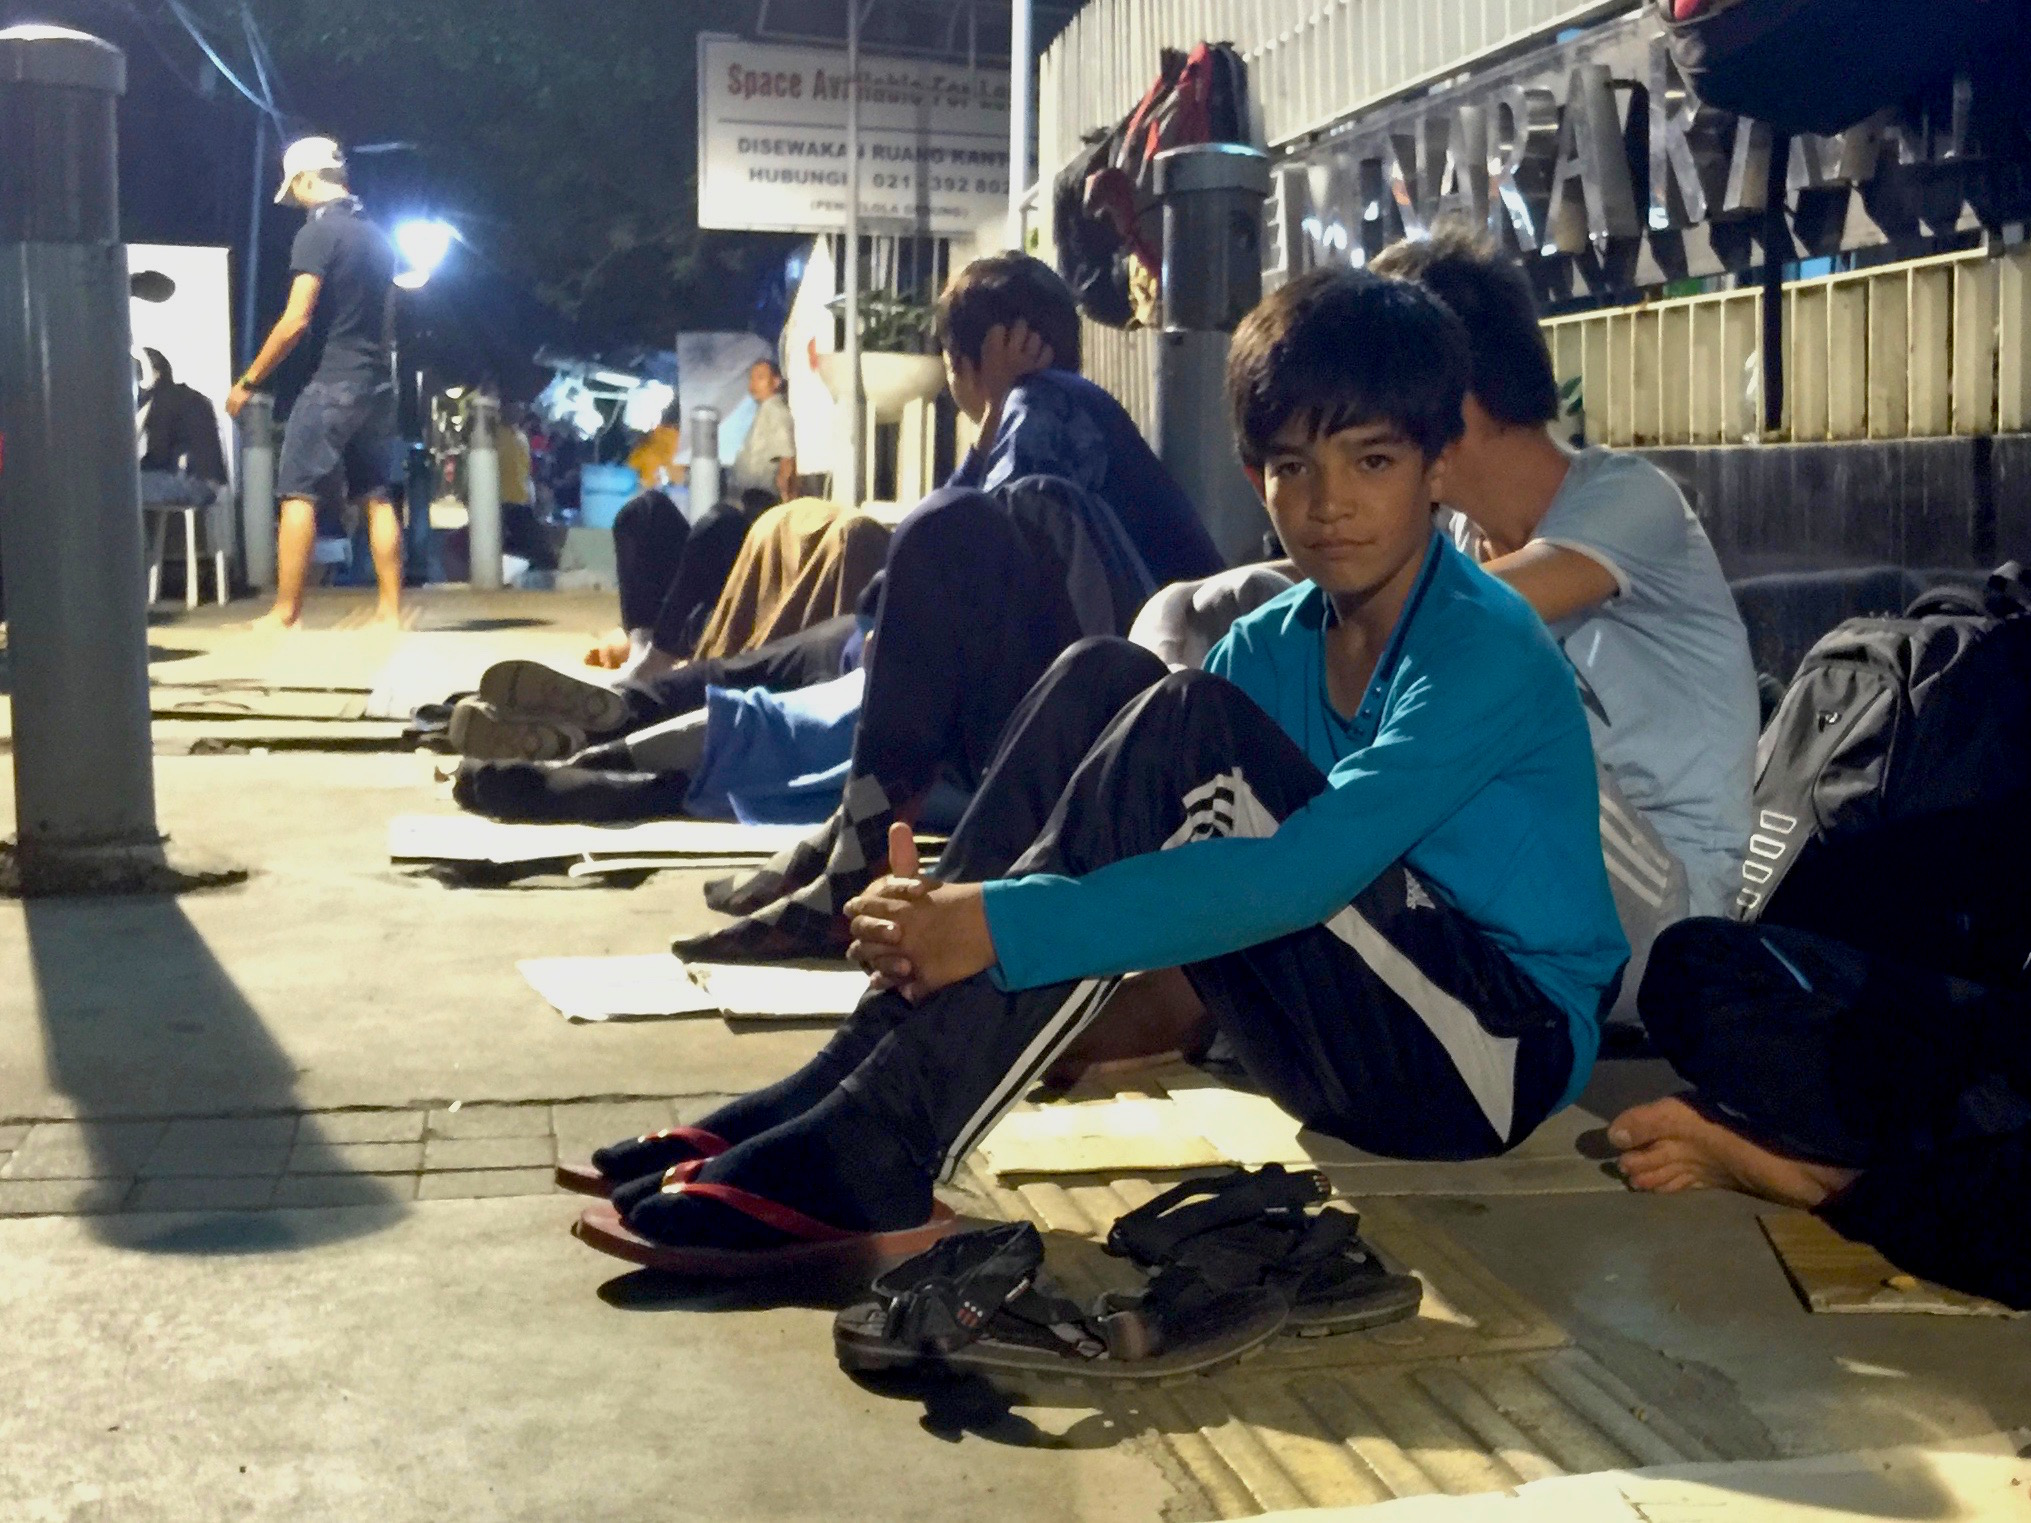 Ethnic Hazara refugees from Afghanistan and Pakistan camp outside the UNHCR office in Jakarta, Indonesia, in December 2015